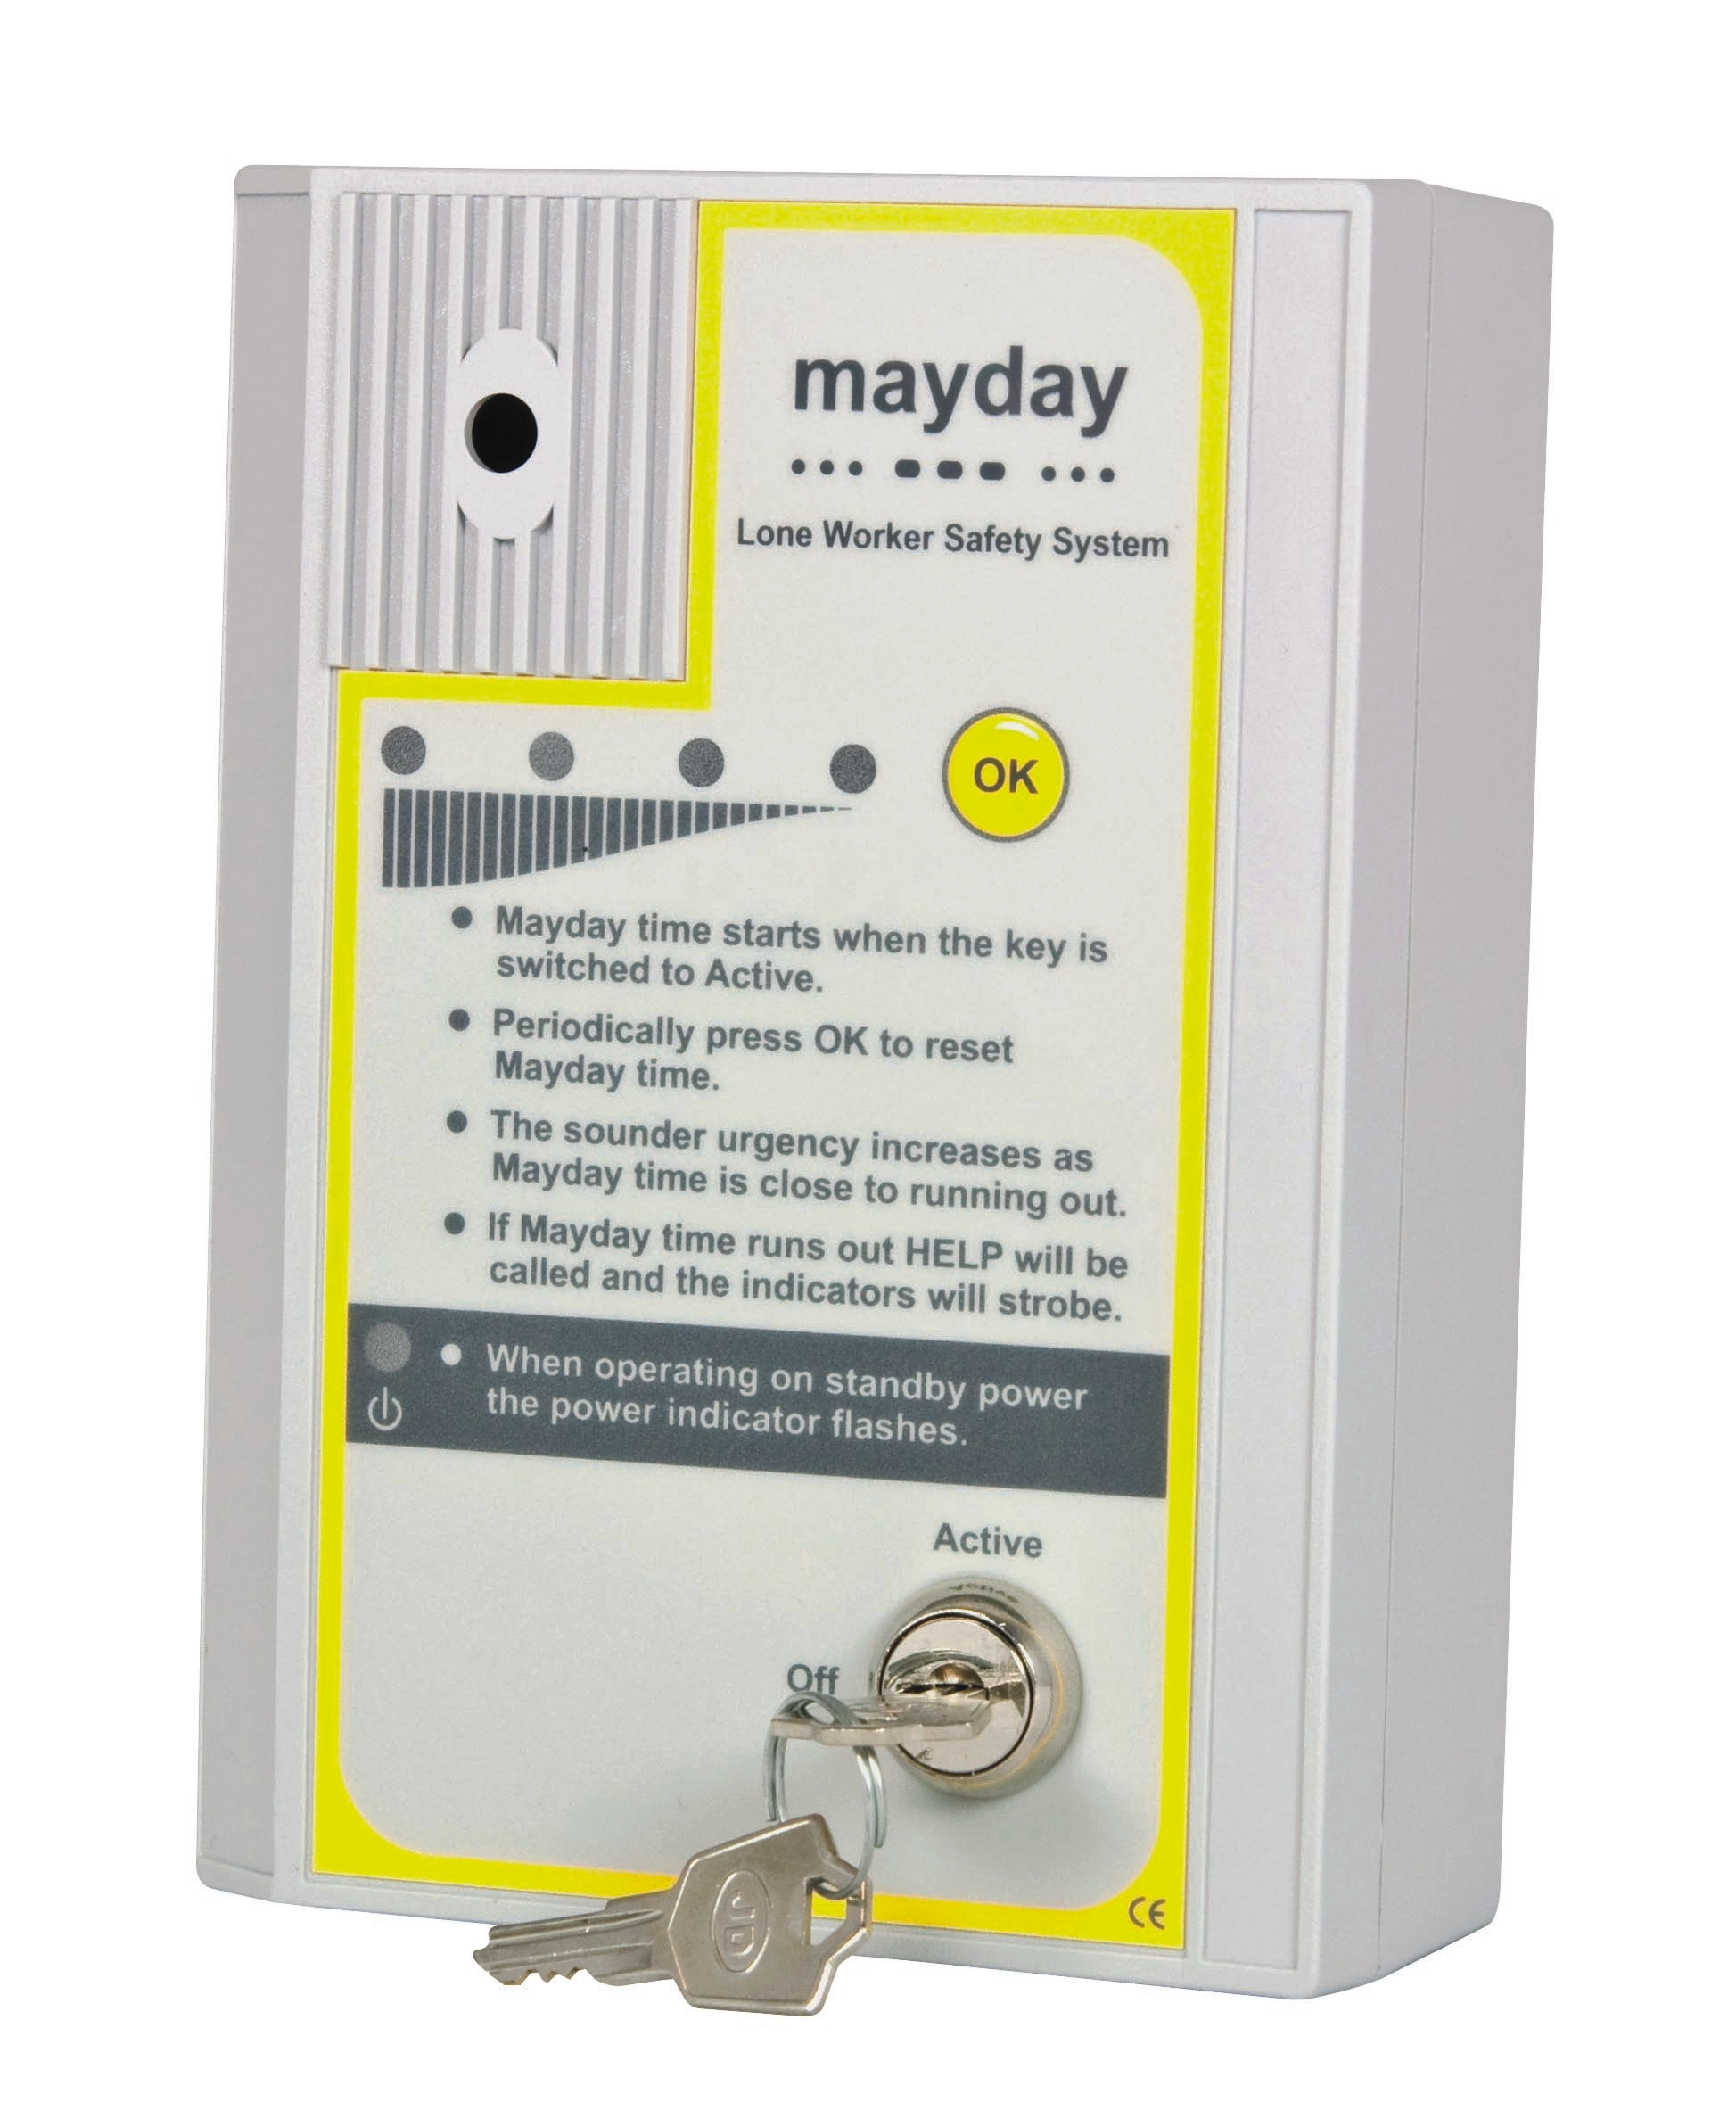 MayDay - Lone worker alarm